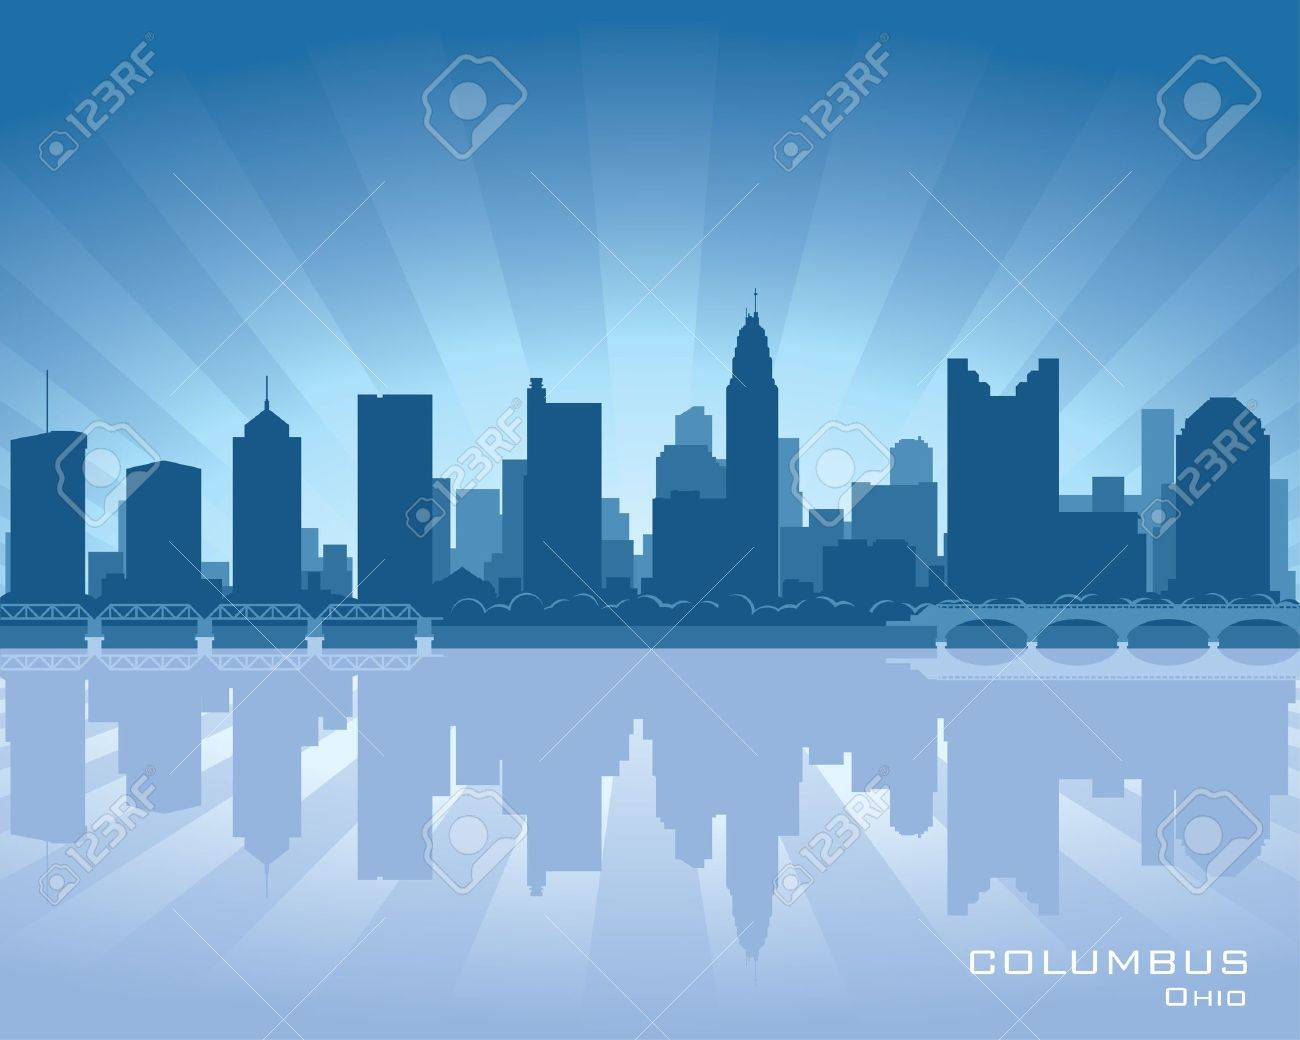 Columbus, Ohio skyline illustration with reflection in water Stock Vector - 12496312